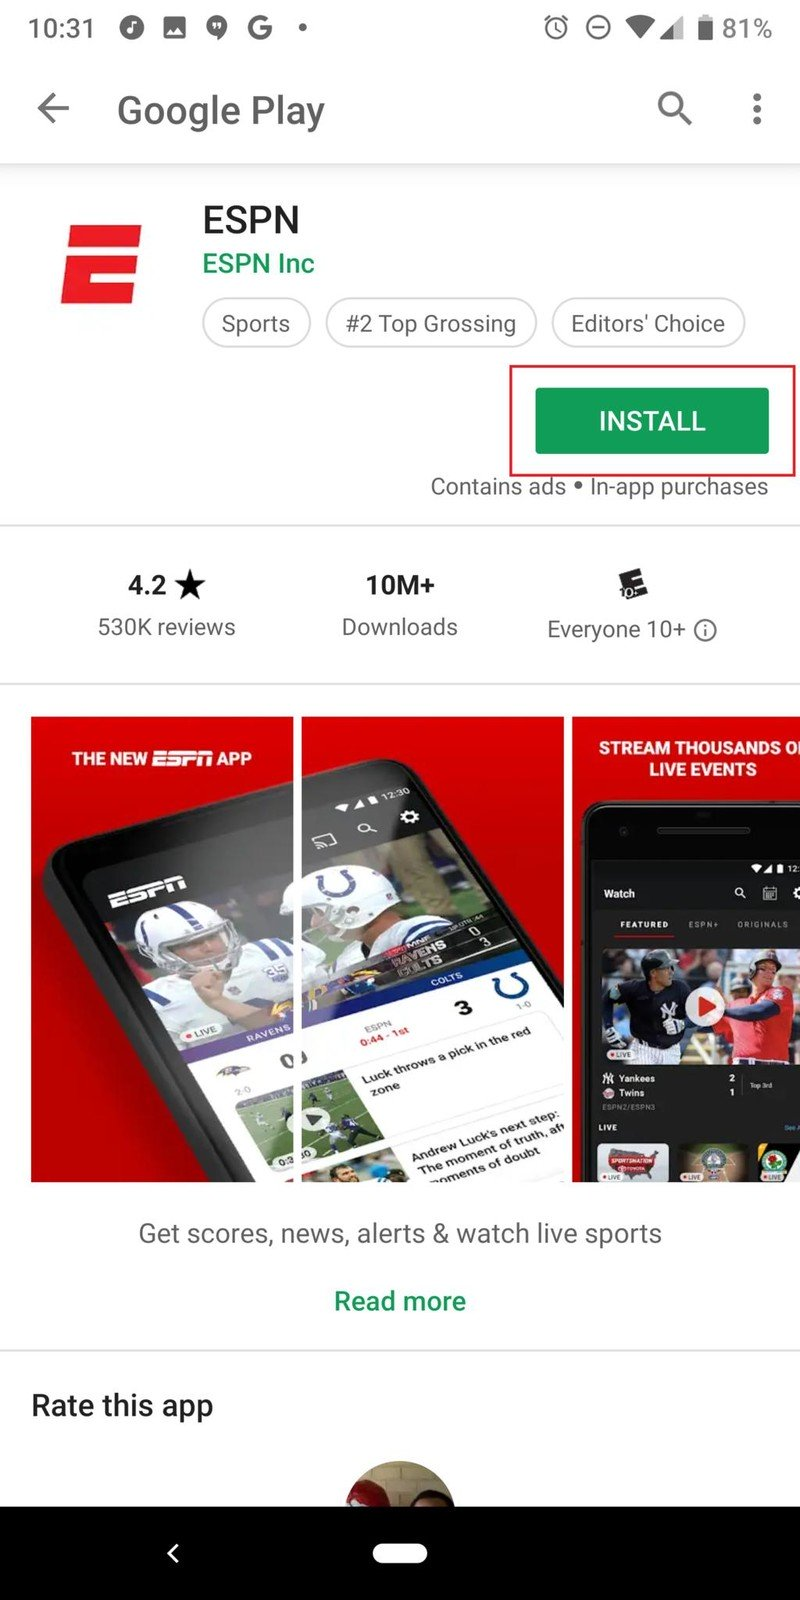 espn_app_android_install_play_store-30mh